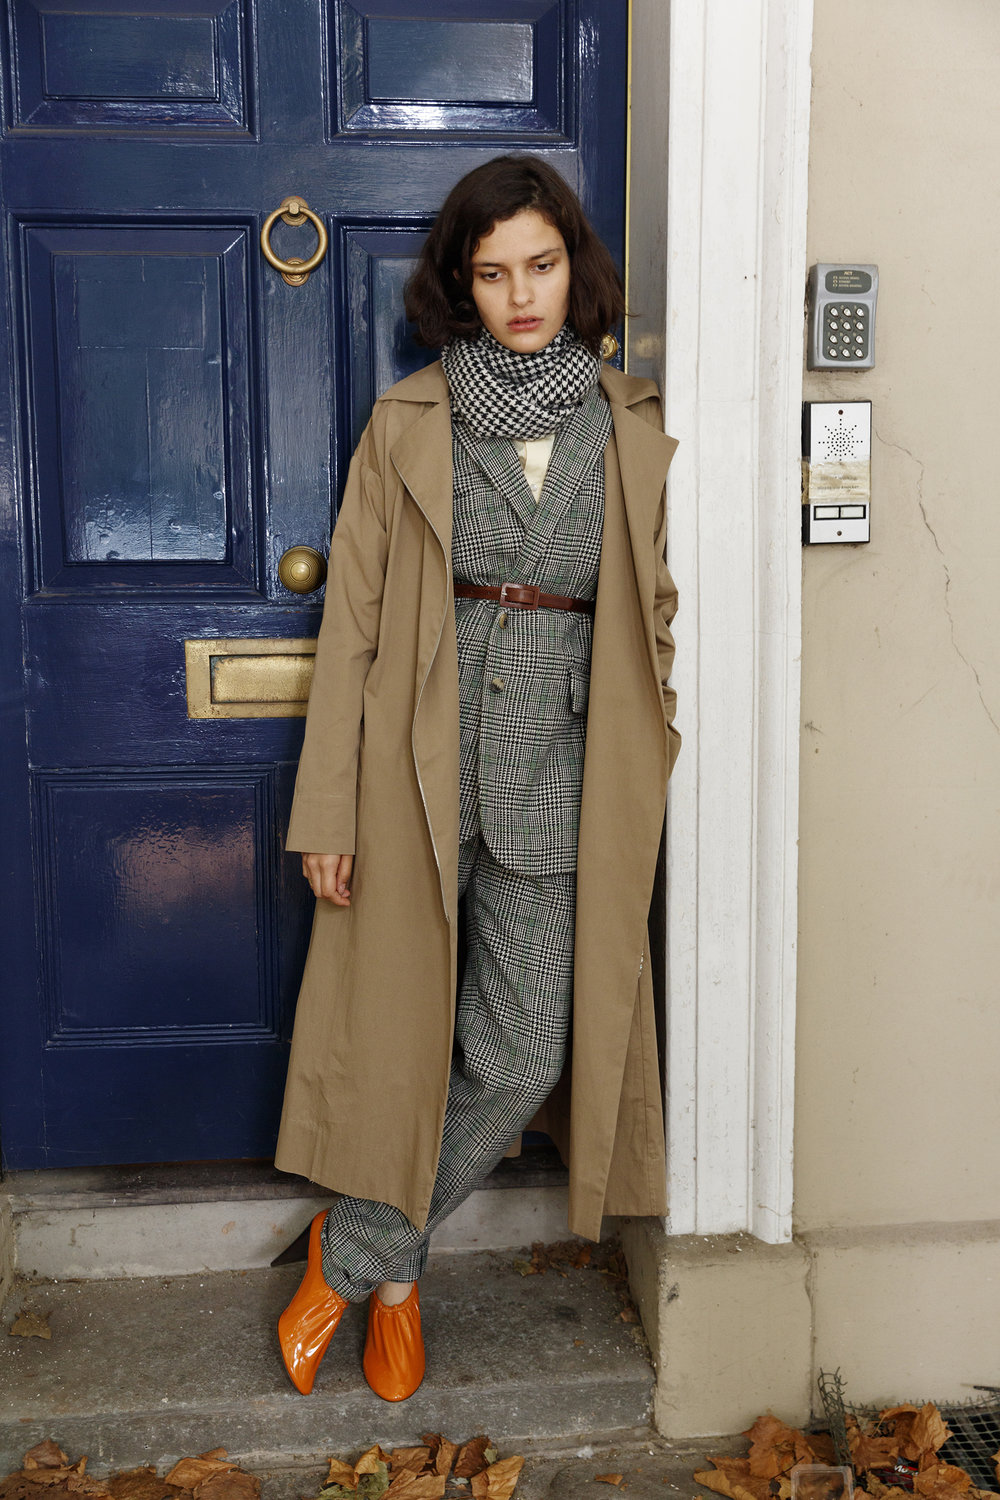 Popeline shirt BALENCIAGA, prince of wales suit and scarf HOLLAND & HOLLAND, crystals encrusted zipped trench coat ISA ARFEN, leather belt FRANCO JACASSI VINTAGE DELIRIUM, orange soft patent calfskin pumps CÉLINE.